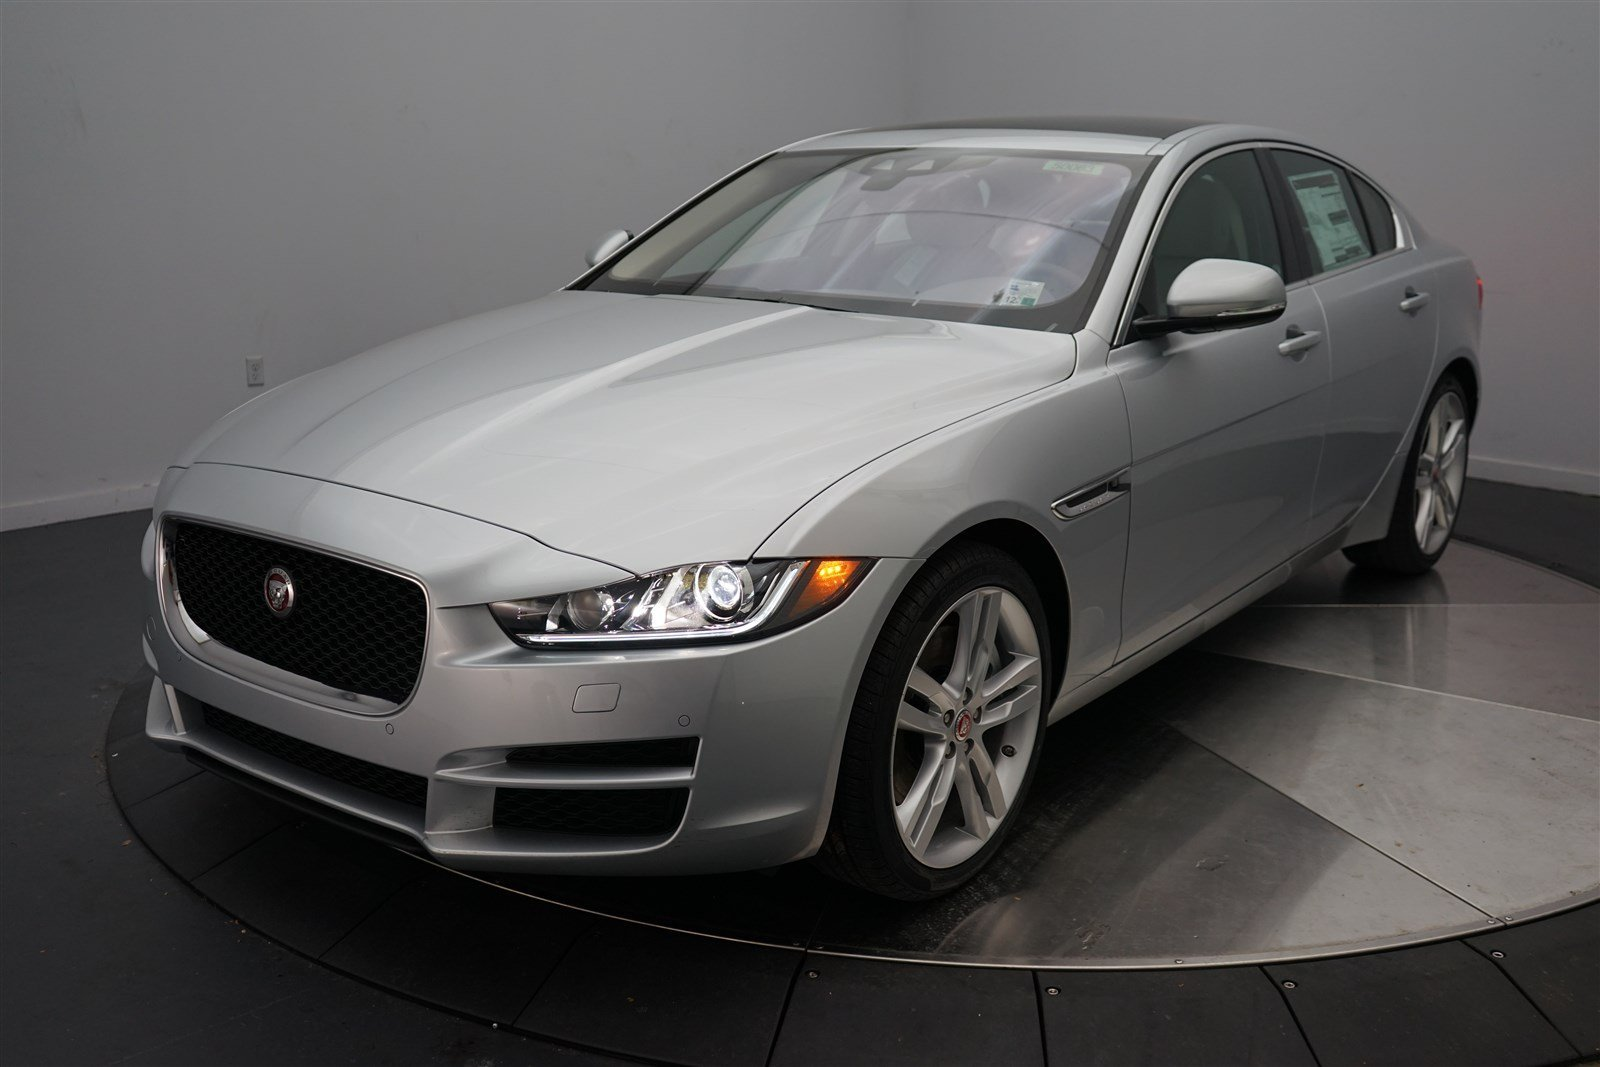 new 2017 jaguar xe 35t prestige 4 door sedan in shreveport 50063 jaguar of shreveport. Black Bedroom Furniture Sets. Home Design Ideas